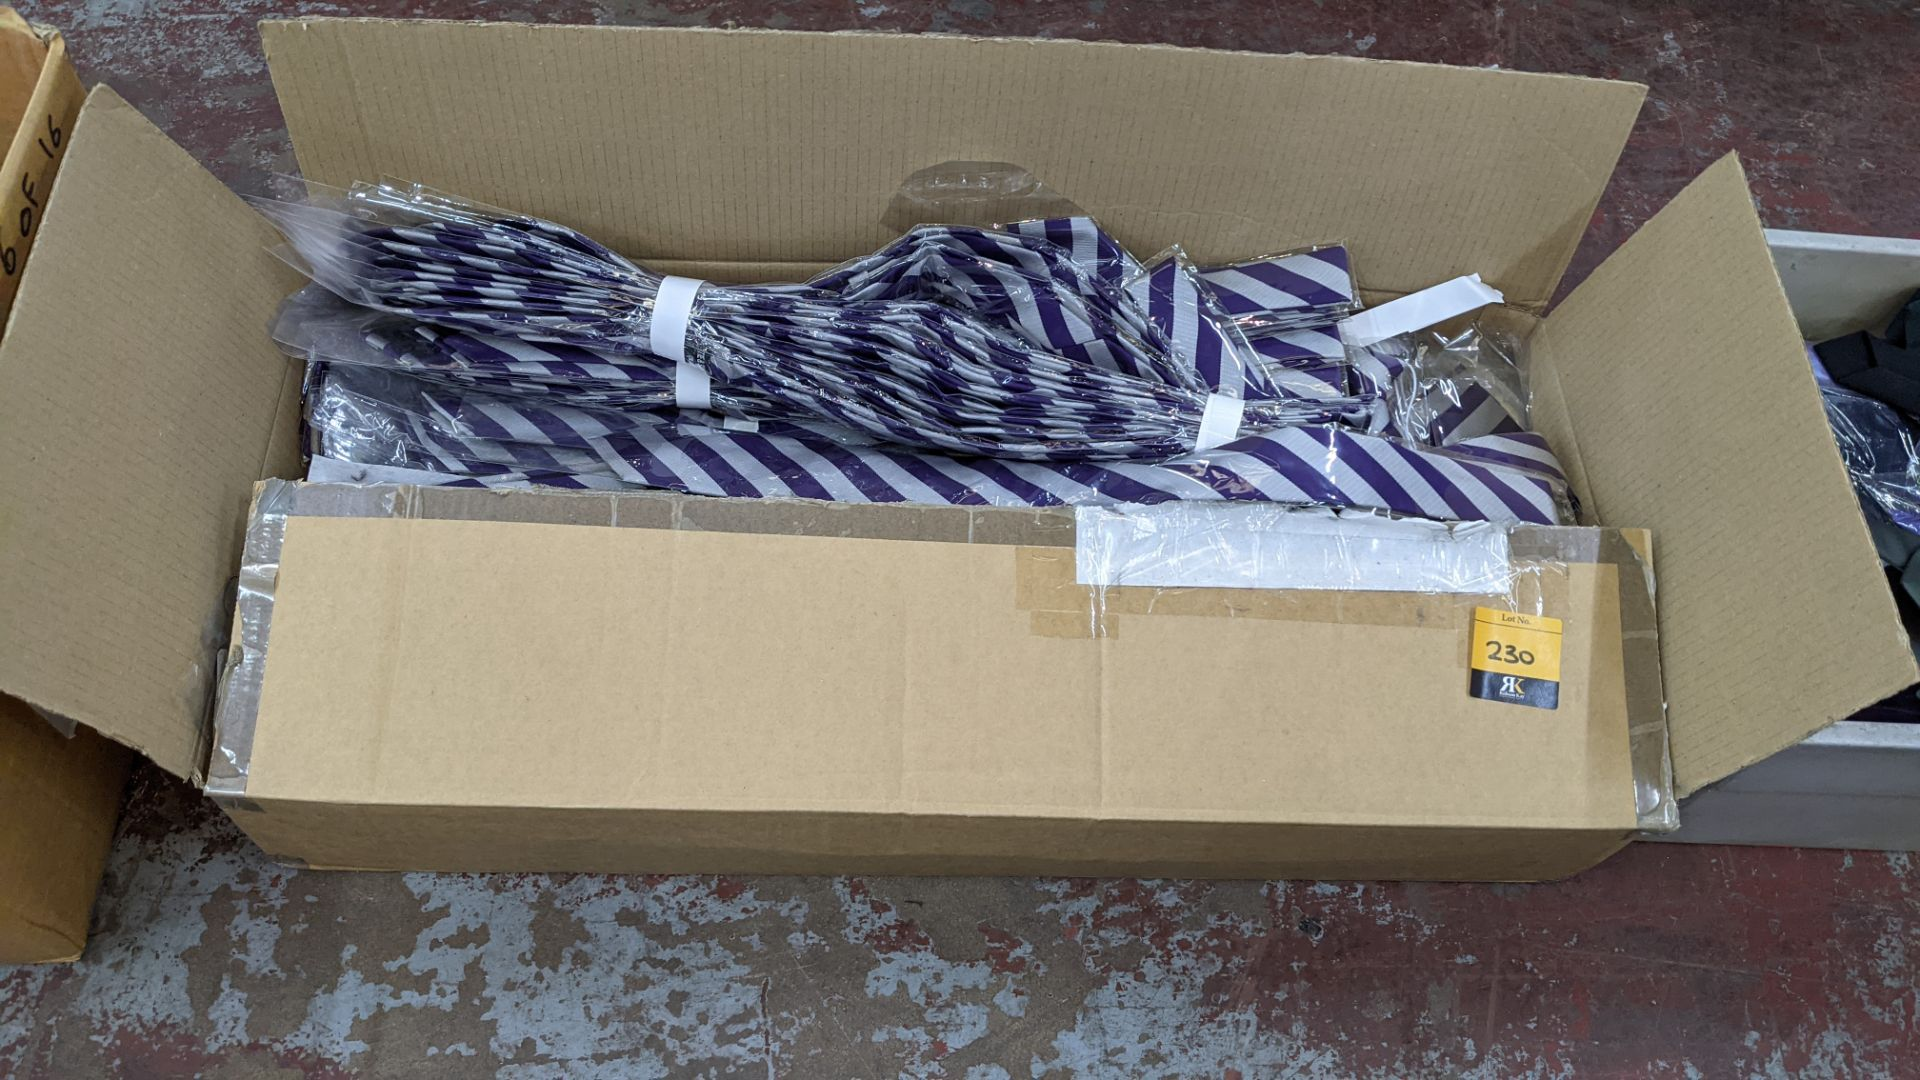 Box of purple & silver striped ties - Image 2 of 3